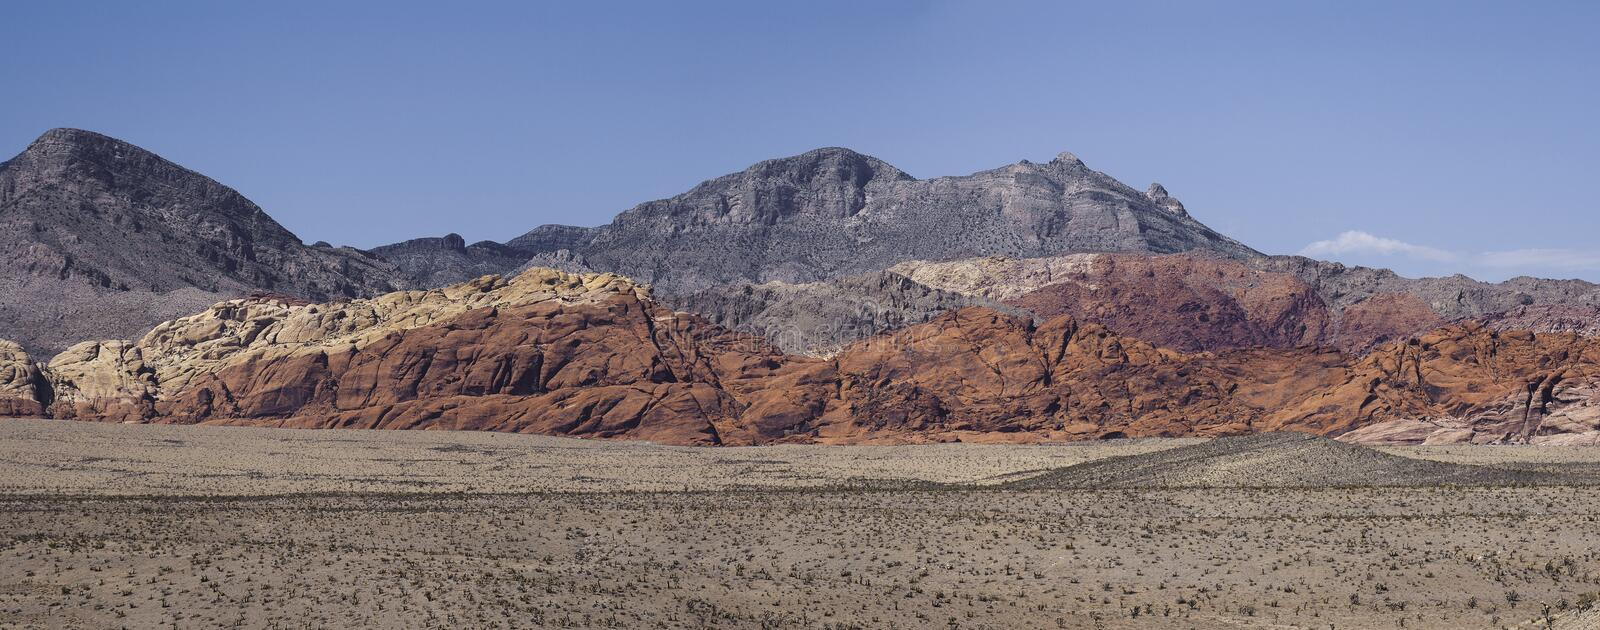 Panorama of hills in Red Rock Canyon, Nevada. Panoramic view of hills of the Red Rock Canyon Nevada, during a sunny day of summer royalty free stock photo